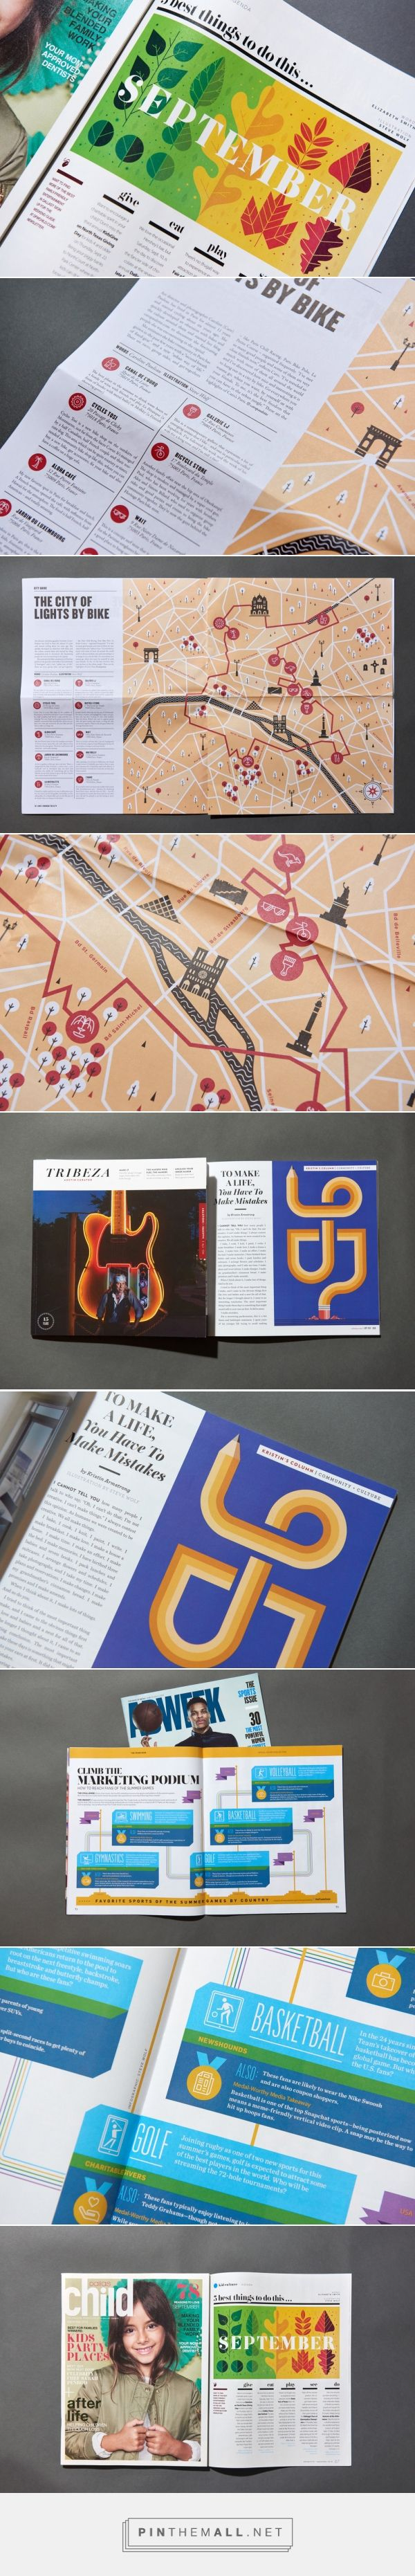 Editorial Projects — Steve Wolf Designs - created via https://pinthemall.net